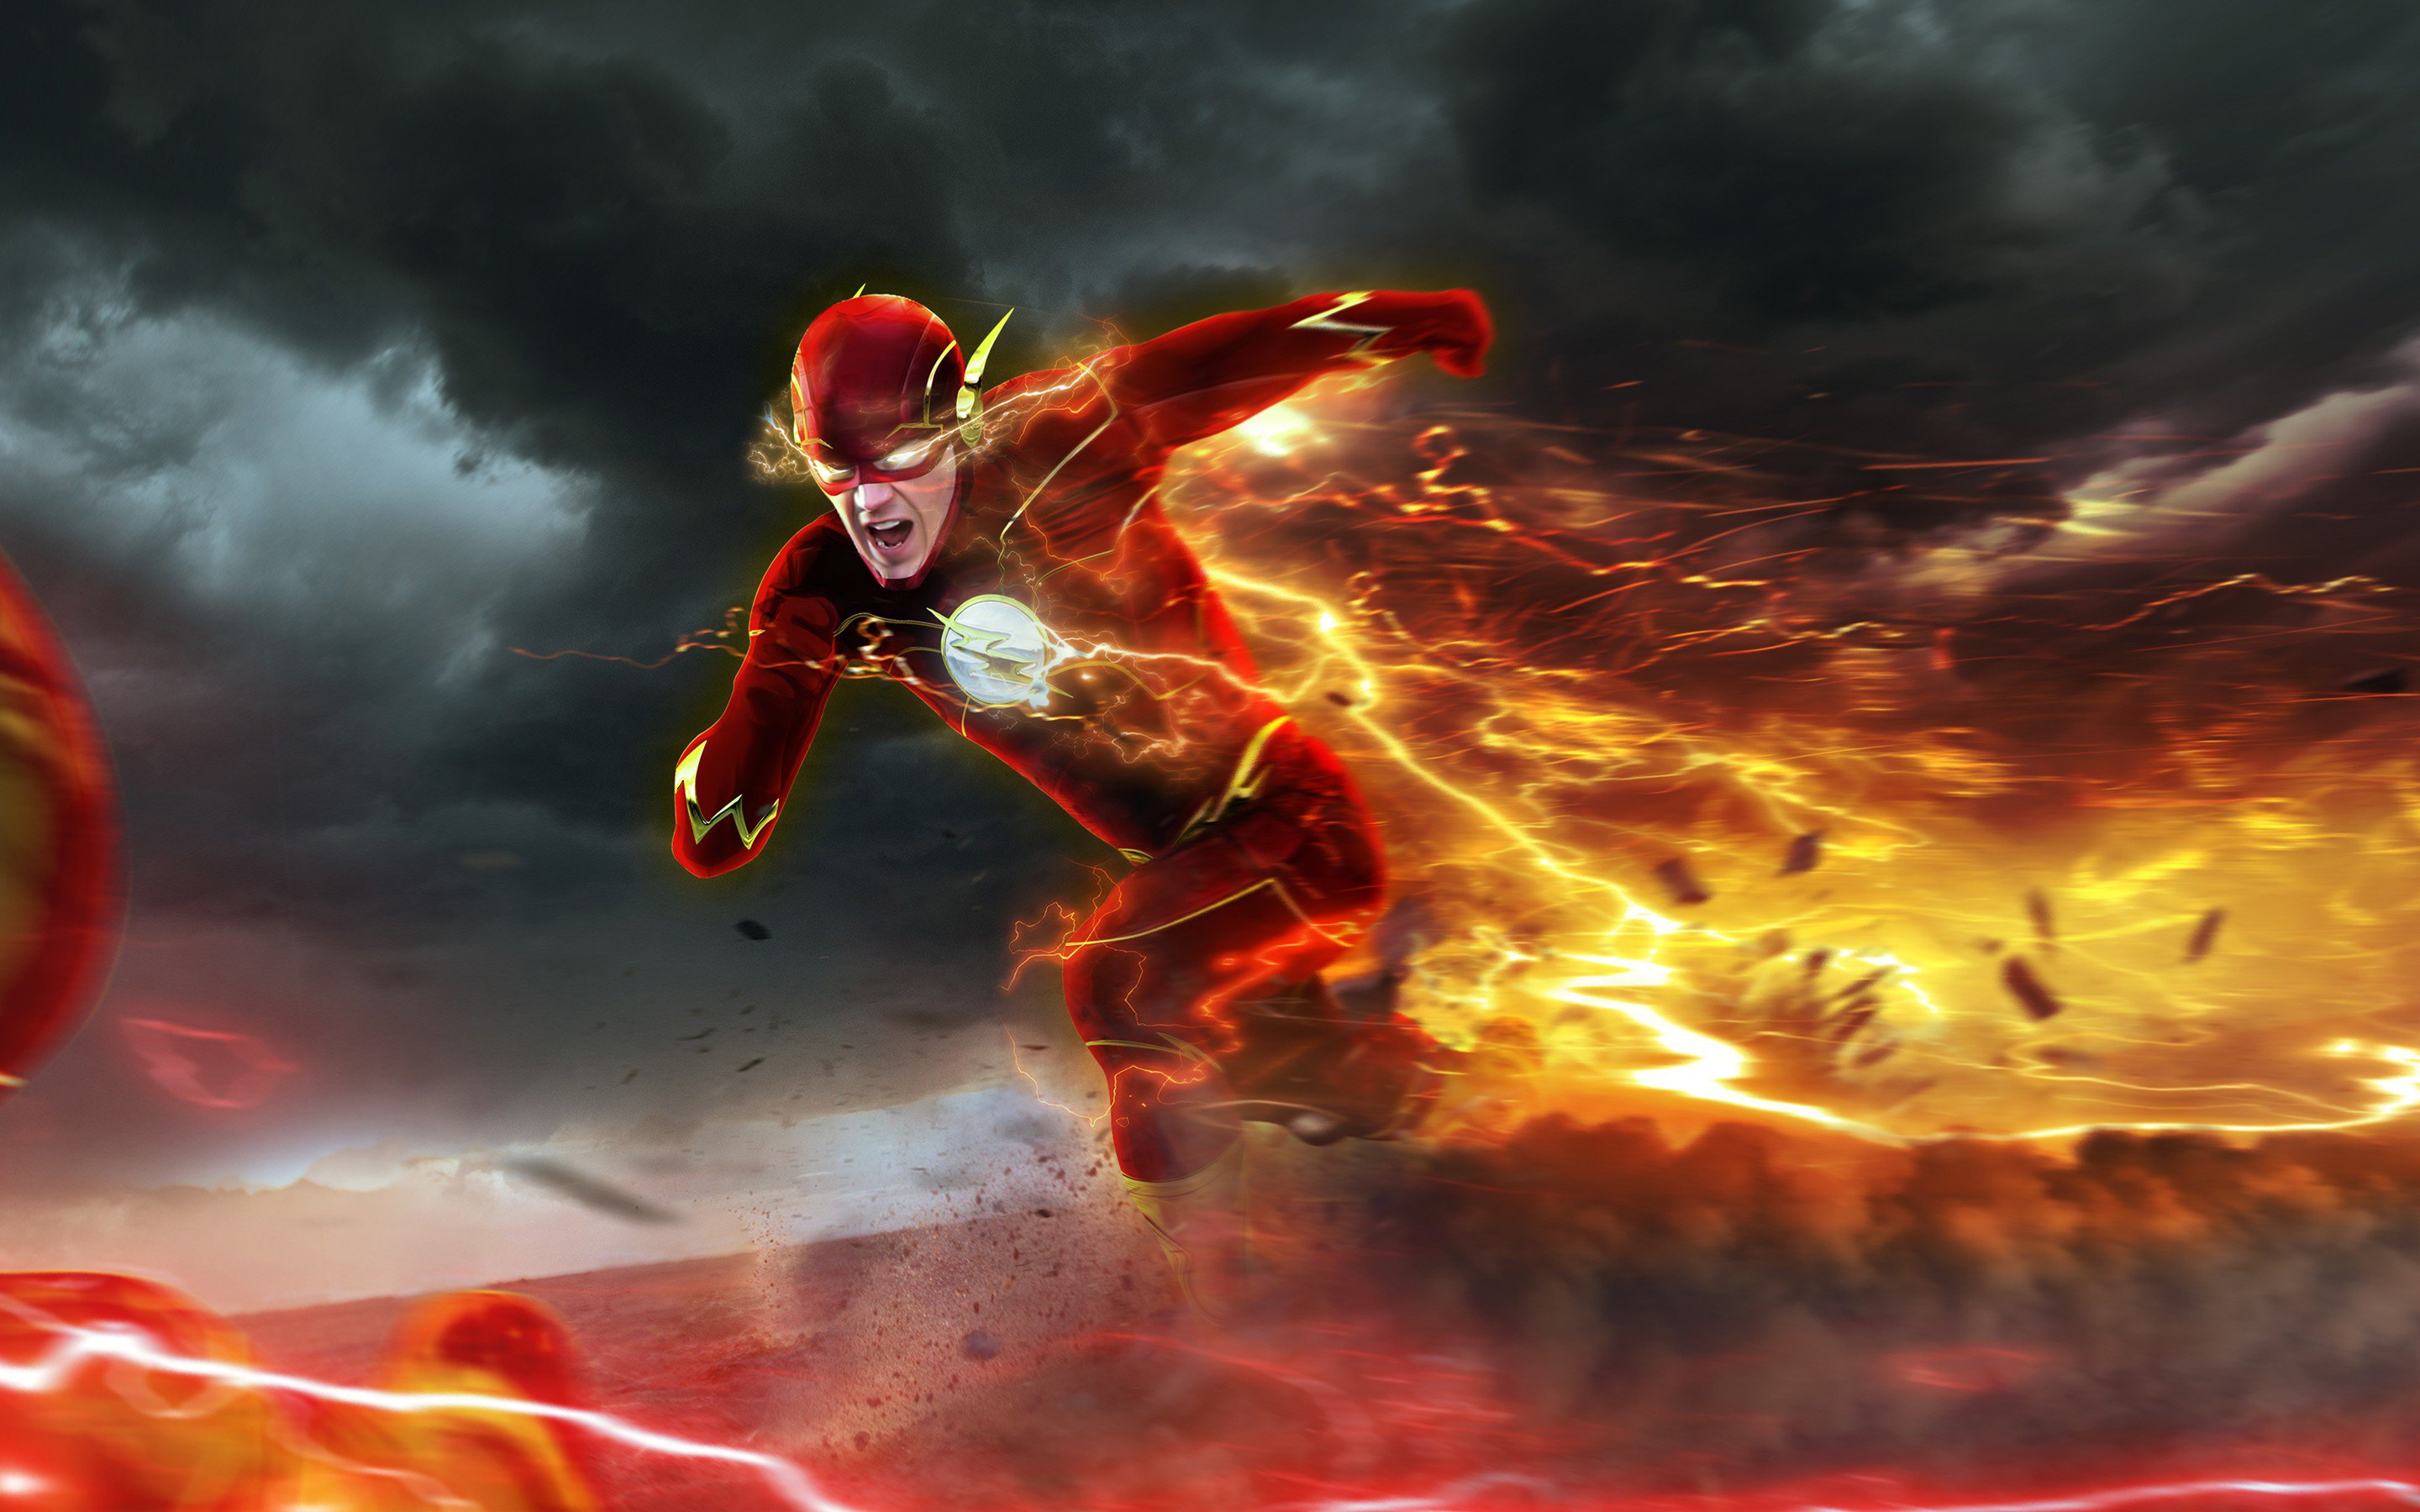 The Flash (2014) HD Wallpaper | Background Image | 2880x1800 | ID:790107 - Wallpaper Abyss